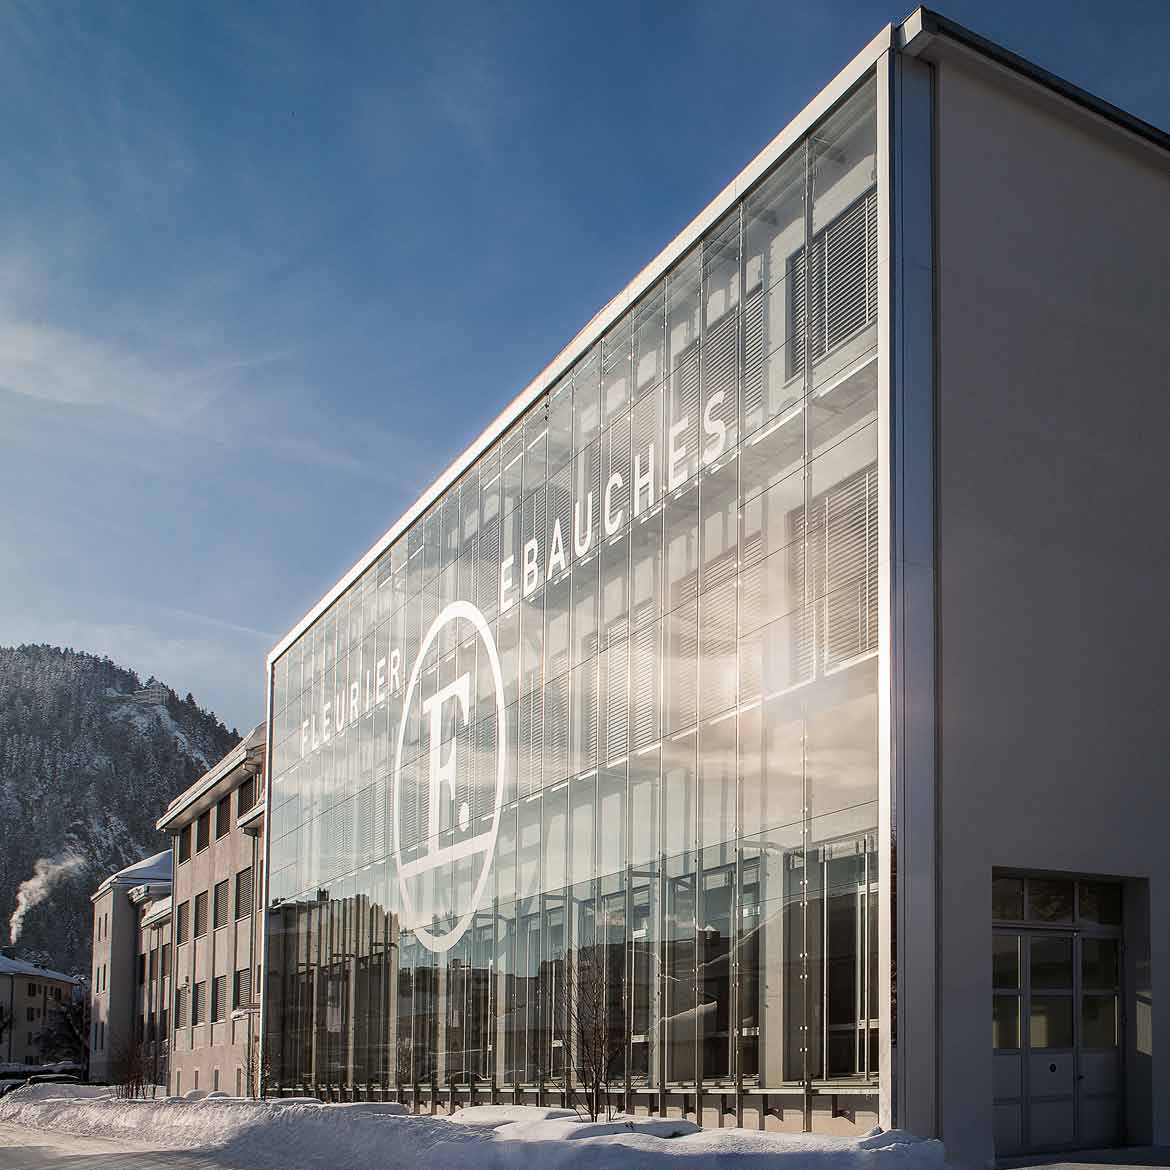 Front Facade view of one of the Chopard manufacture buildings in Fleurier Switzerland